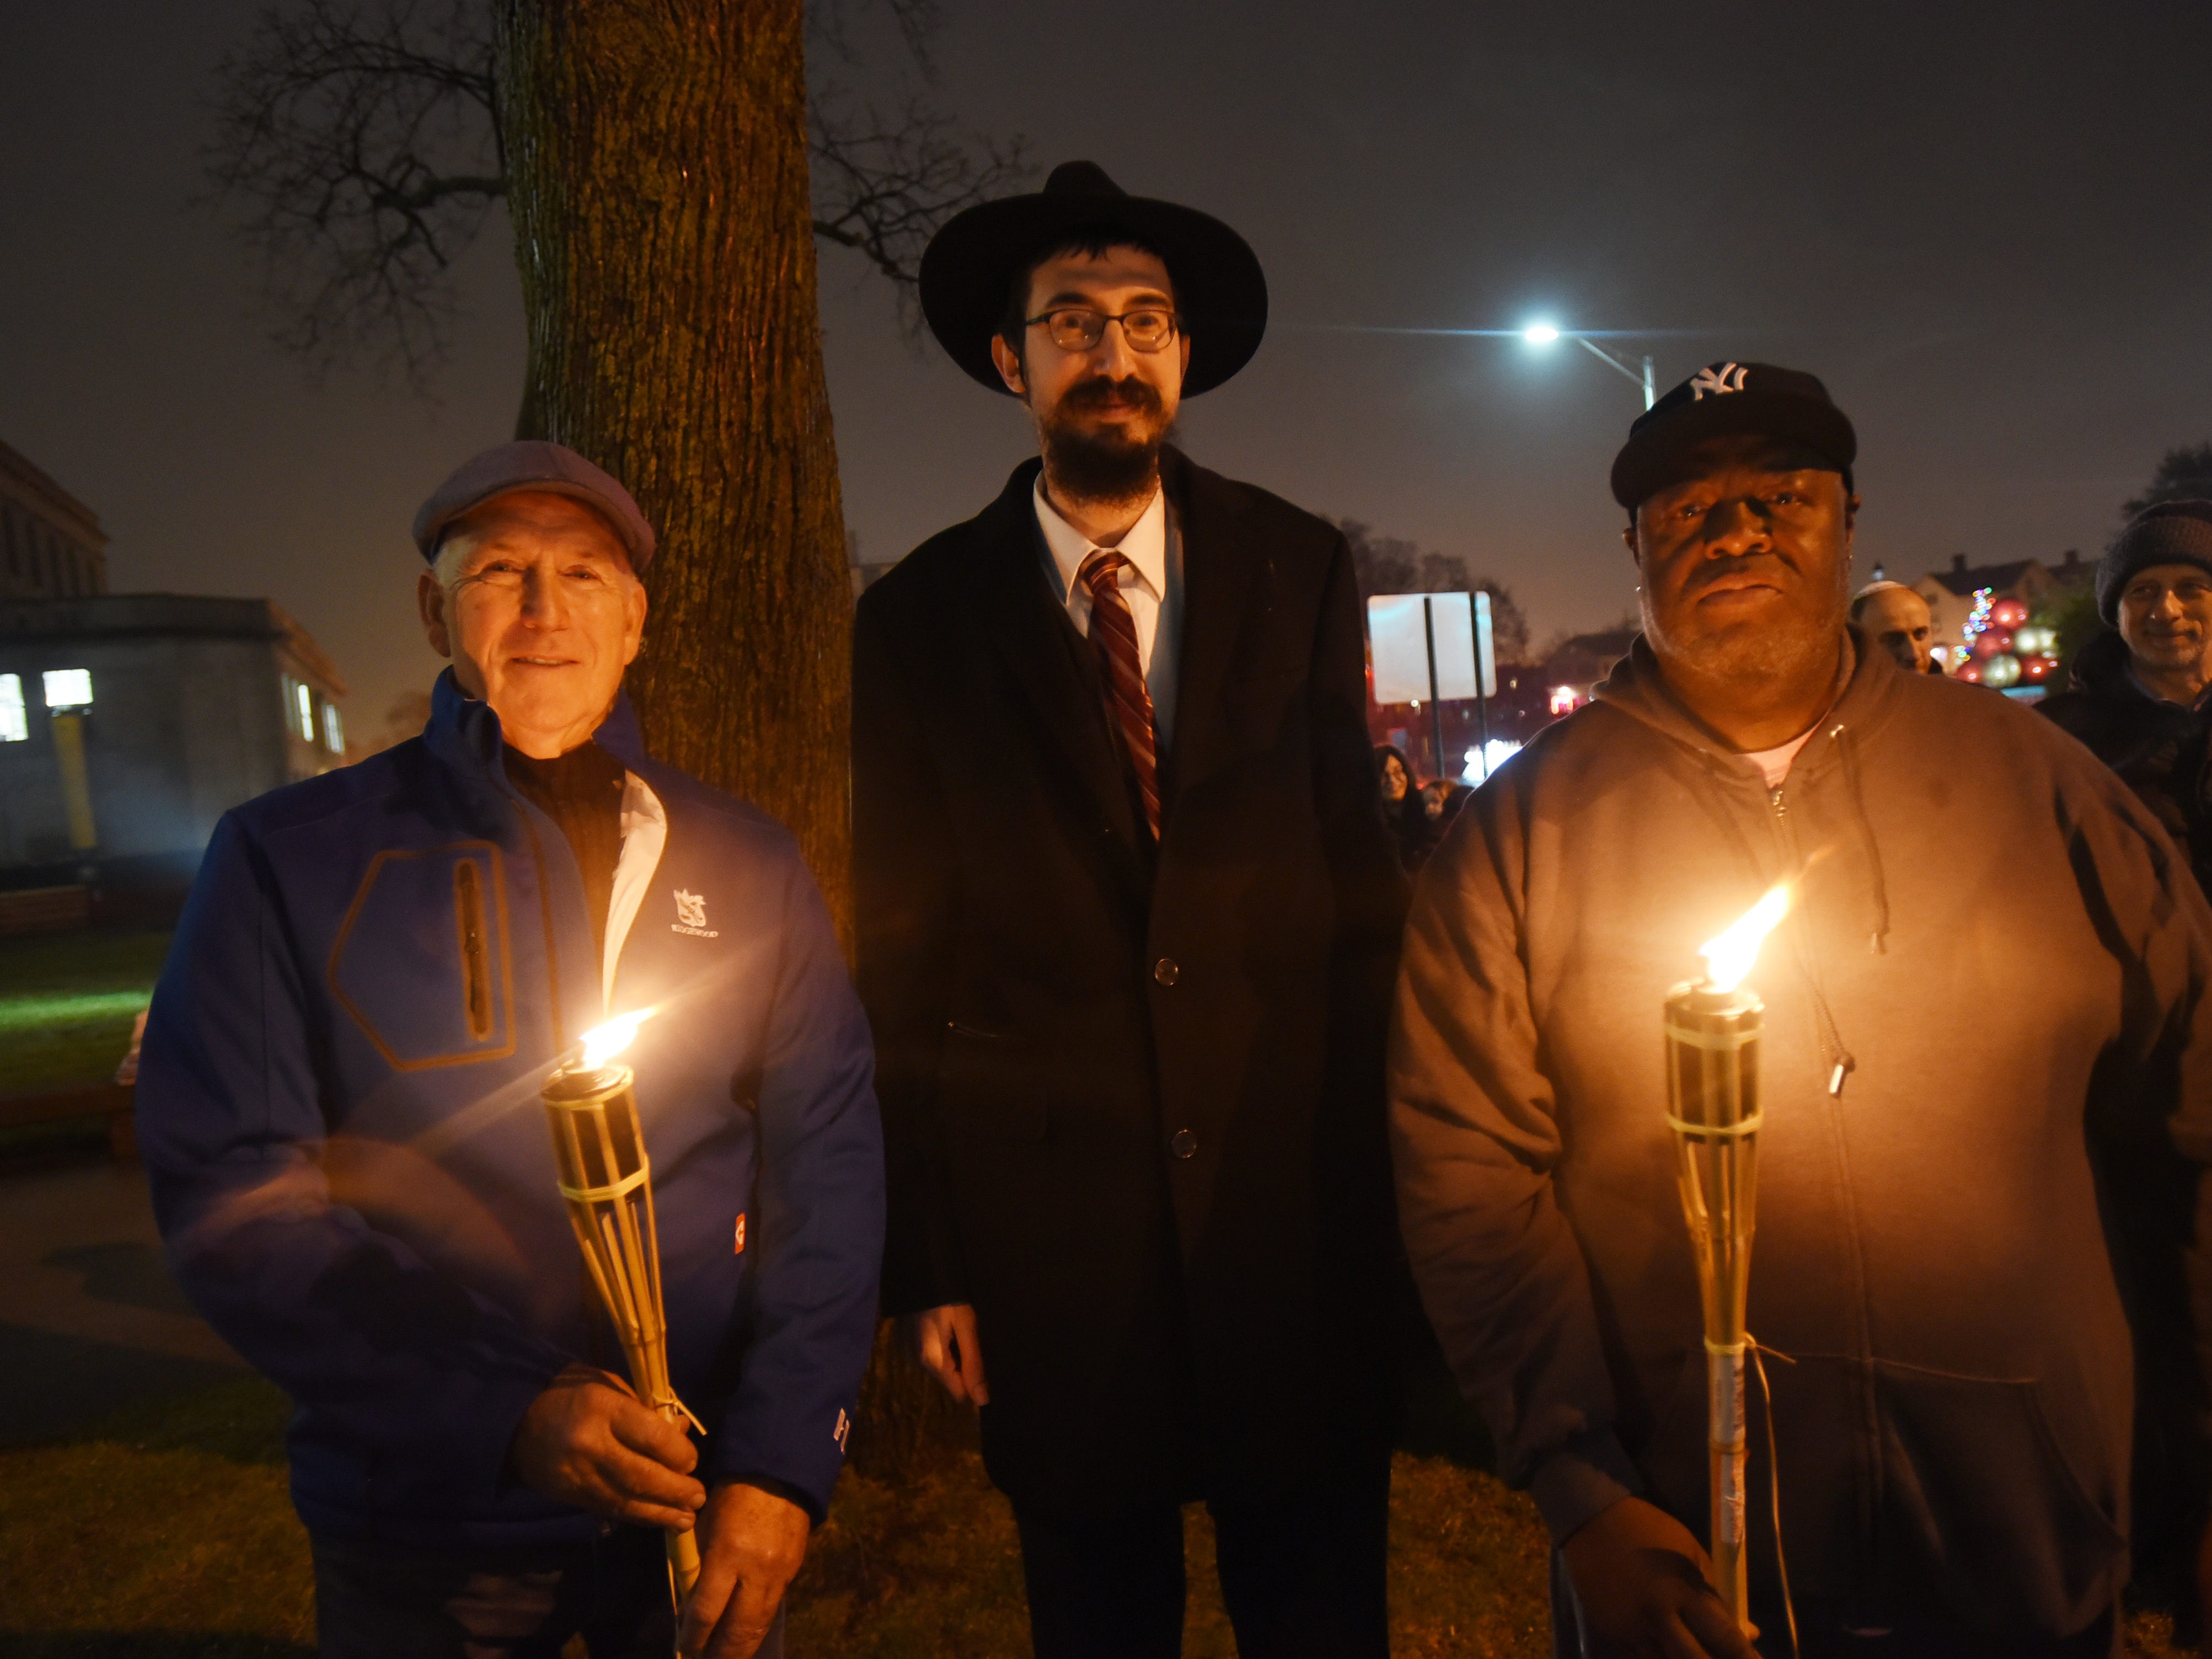 Rabbi Mendy Kaminker from Chabad of Hackensack, has a picture taken together with Hackensack Mayor John Labrosse (L) and Deputy Mayor David Sims (R) prior to the lighting ceremony at the front lawn of Bergen County Courthouse in Hackensack on 12/02/18.